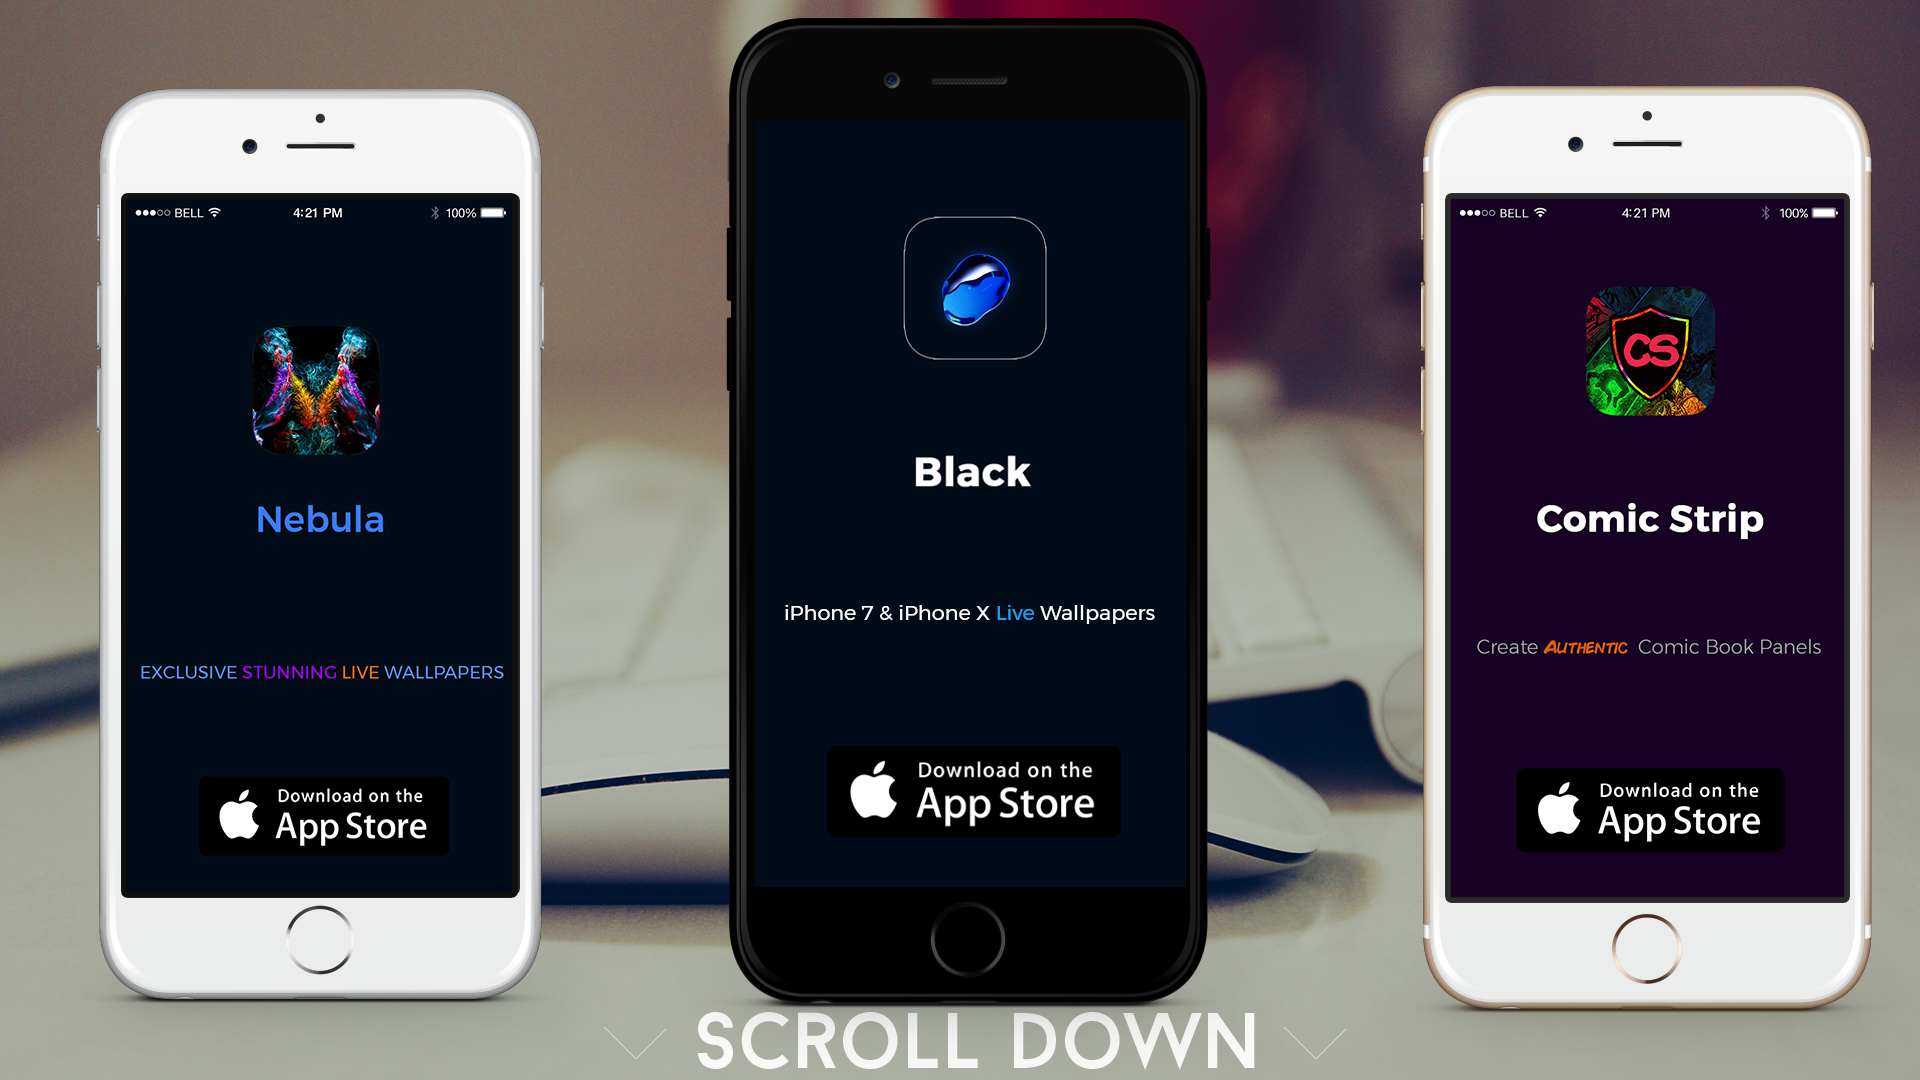 Download Black Live Wallpapers Unicorn Apps